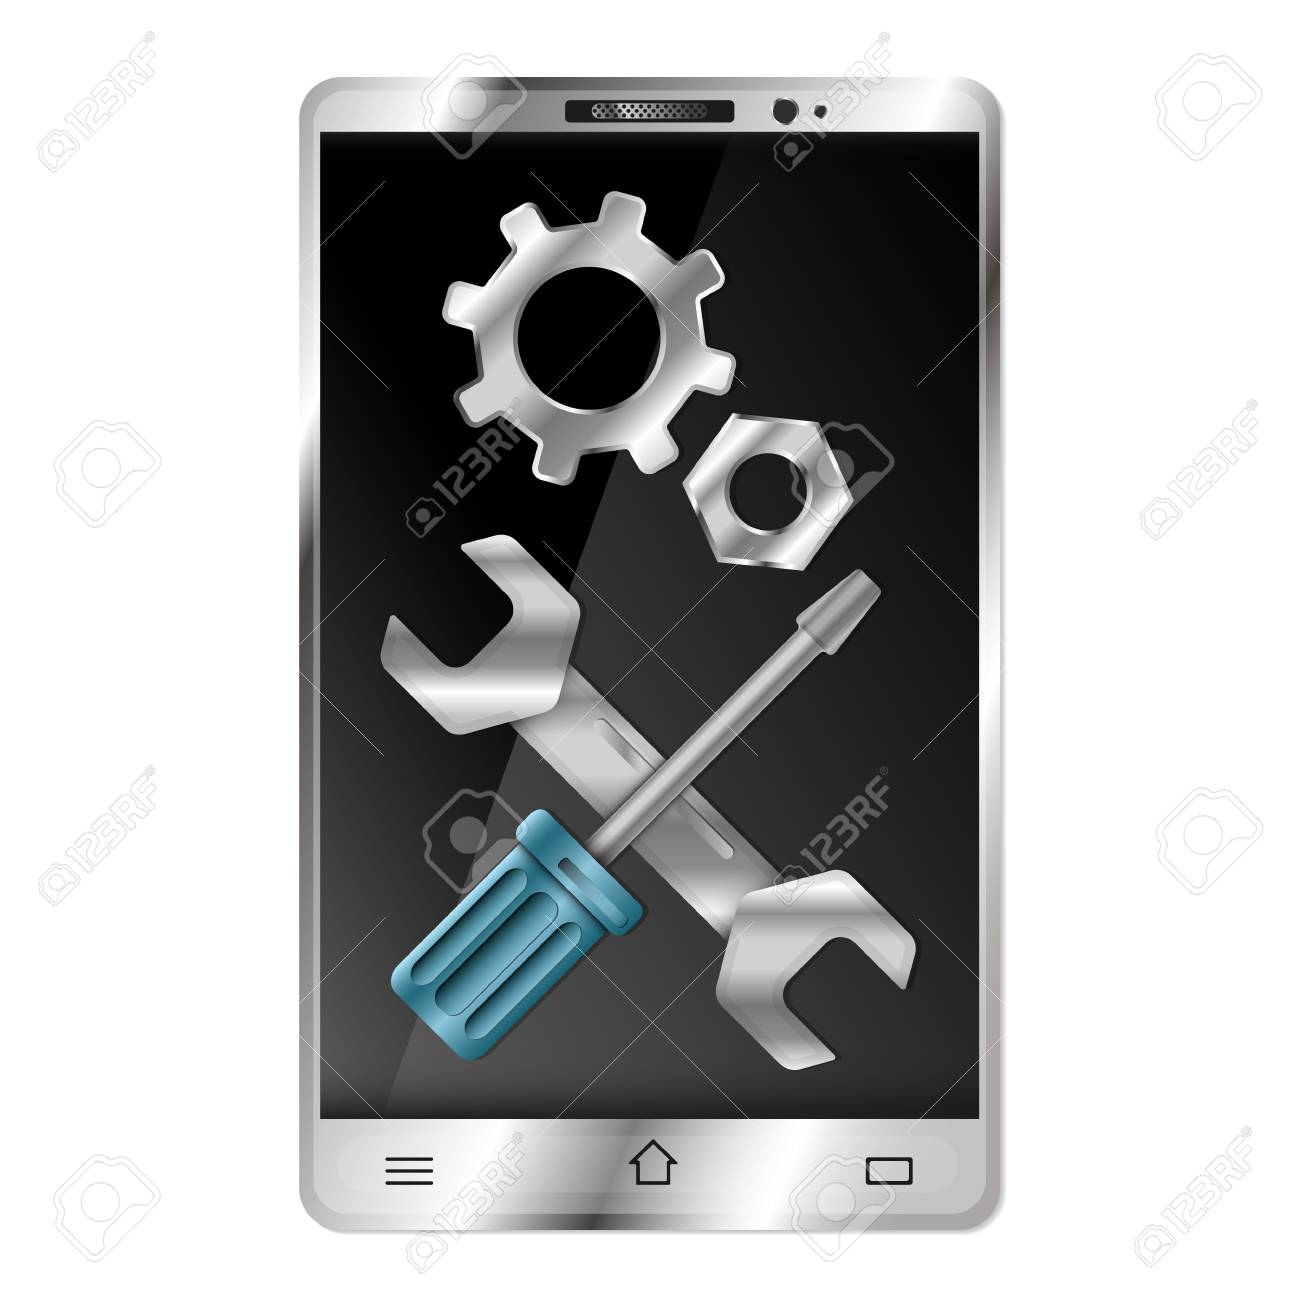 Repair Phones And Gadgets Symbol For Business Royalty Free Cliparts